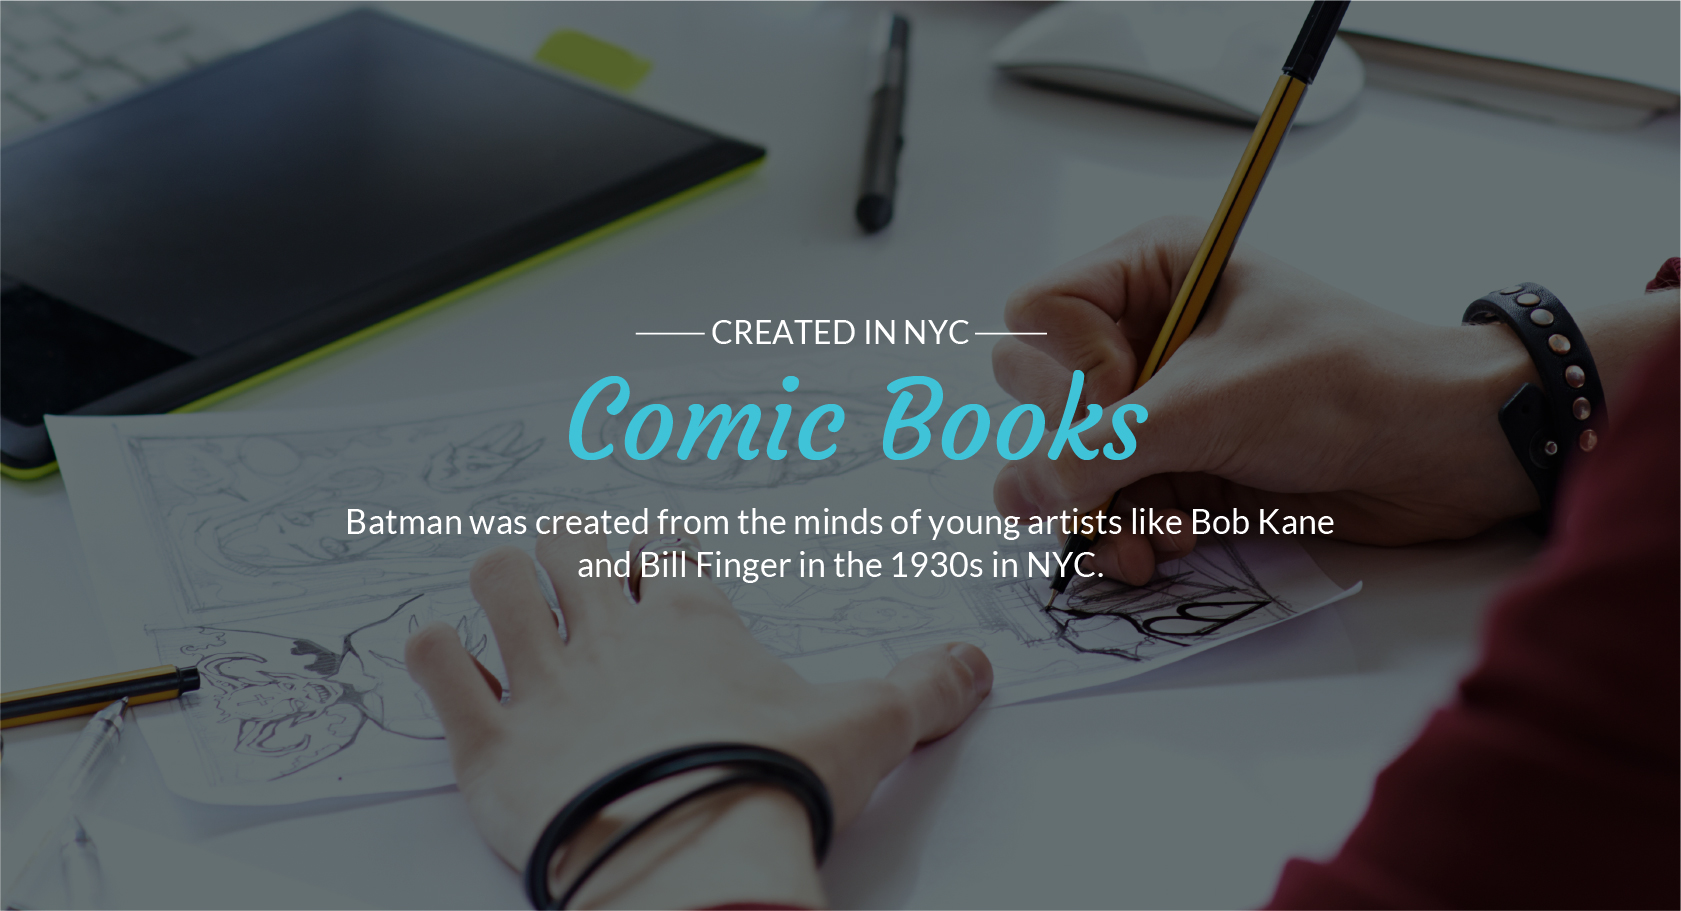 Created in NYC, Comic Books